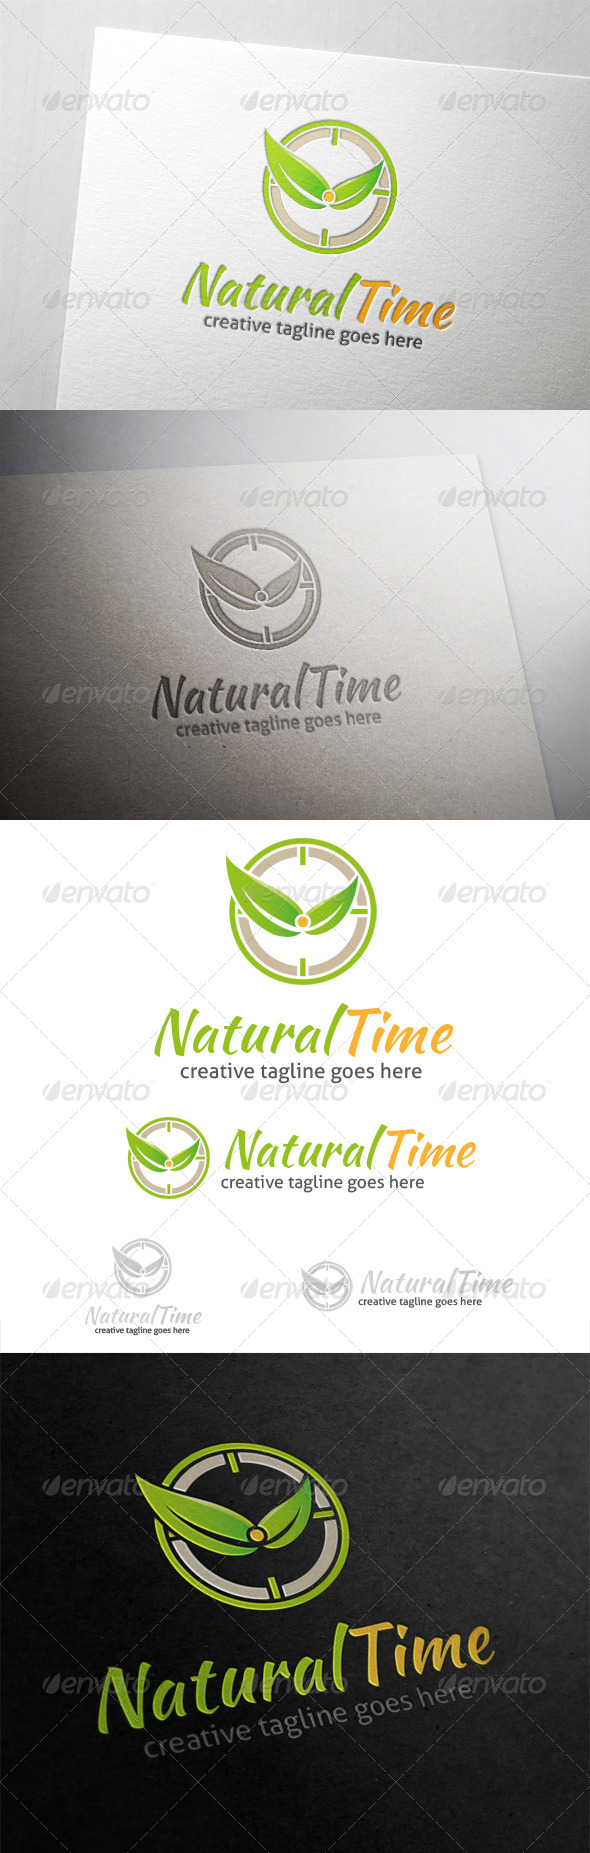 GraphicRiver Natural Time Logo 6100336